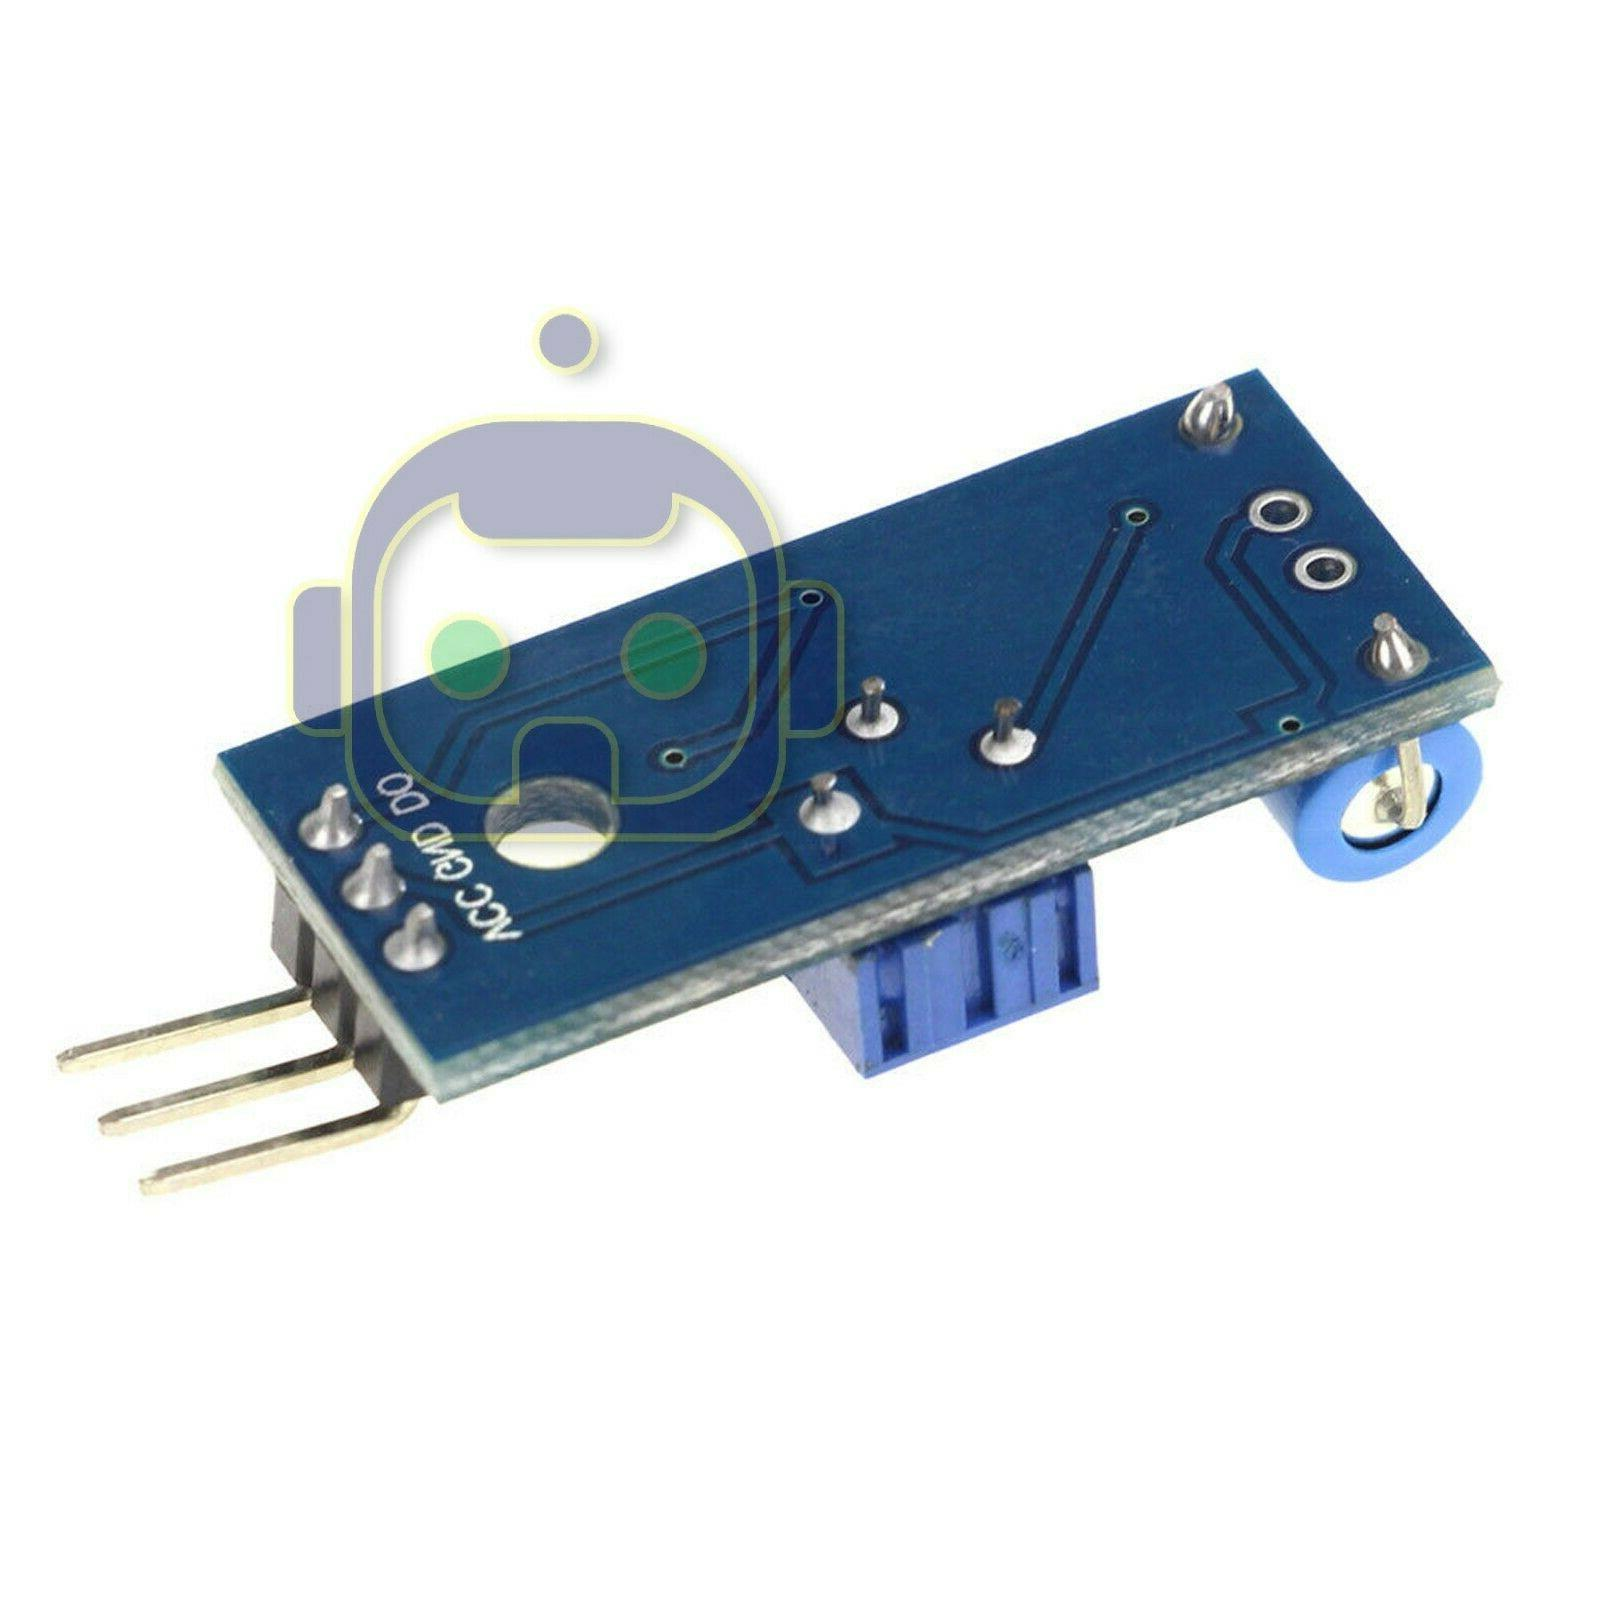 3.3-5V Motion Tilt Alarm Module for